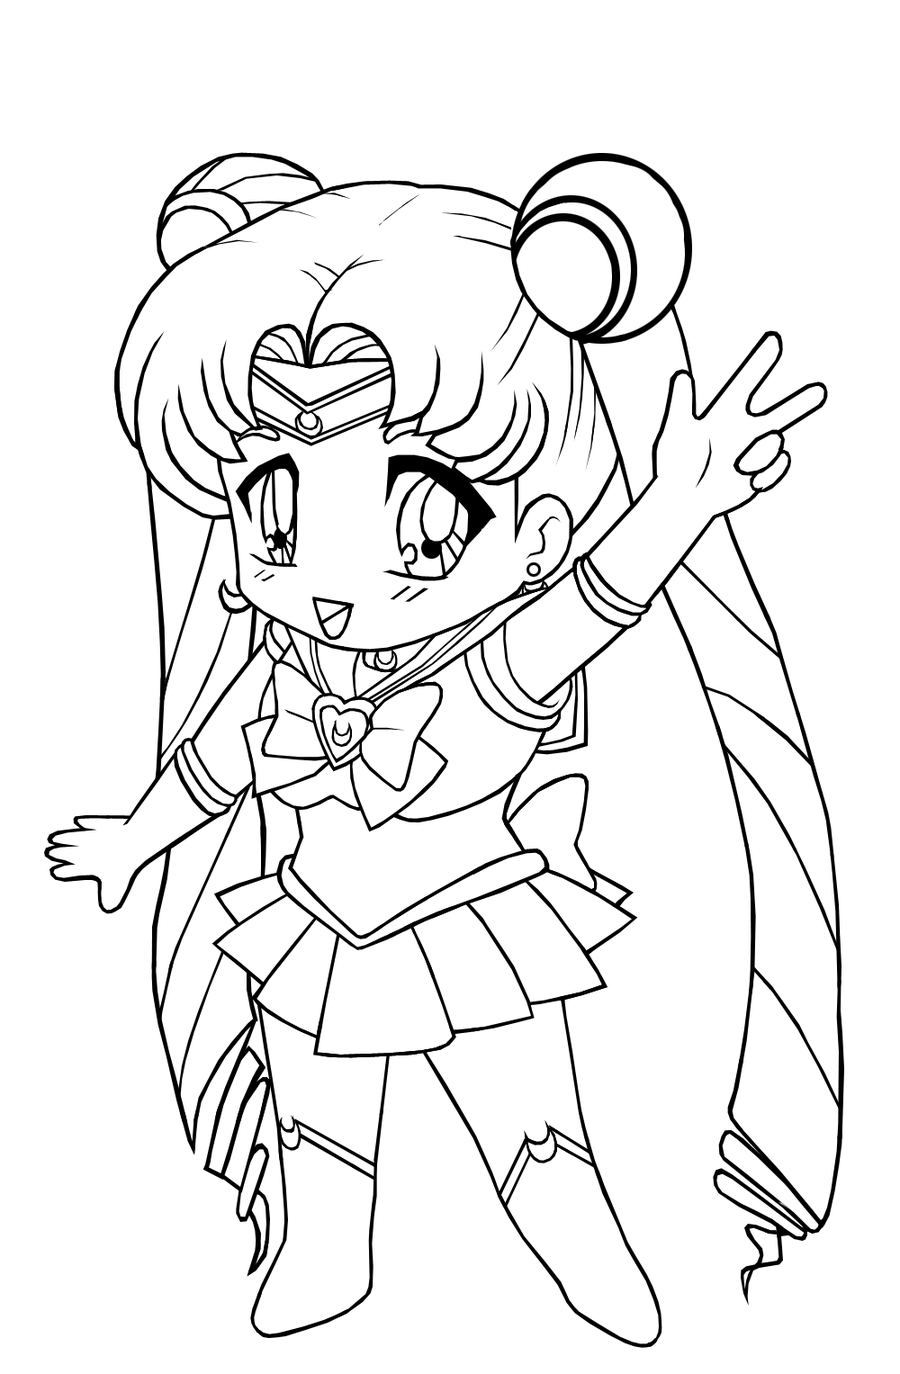 Anime Cat Girl Coloring Pages Coloring Home Anime Vire Coloring Pages Printable